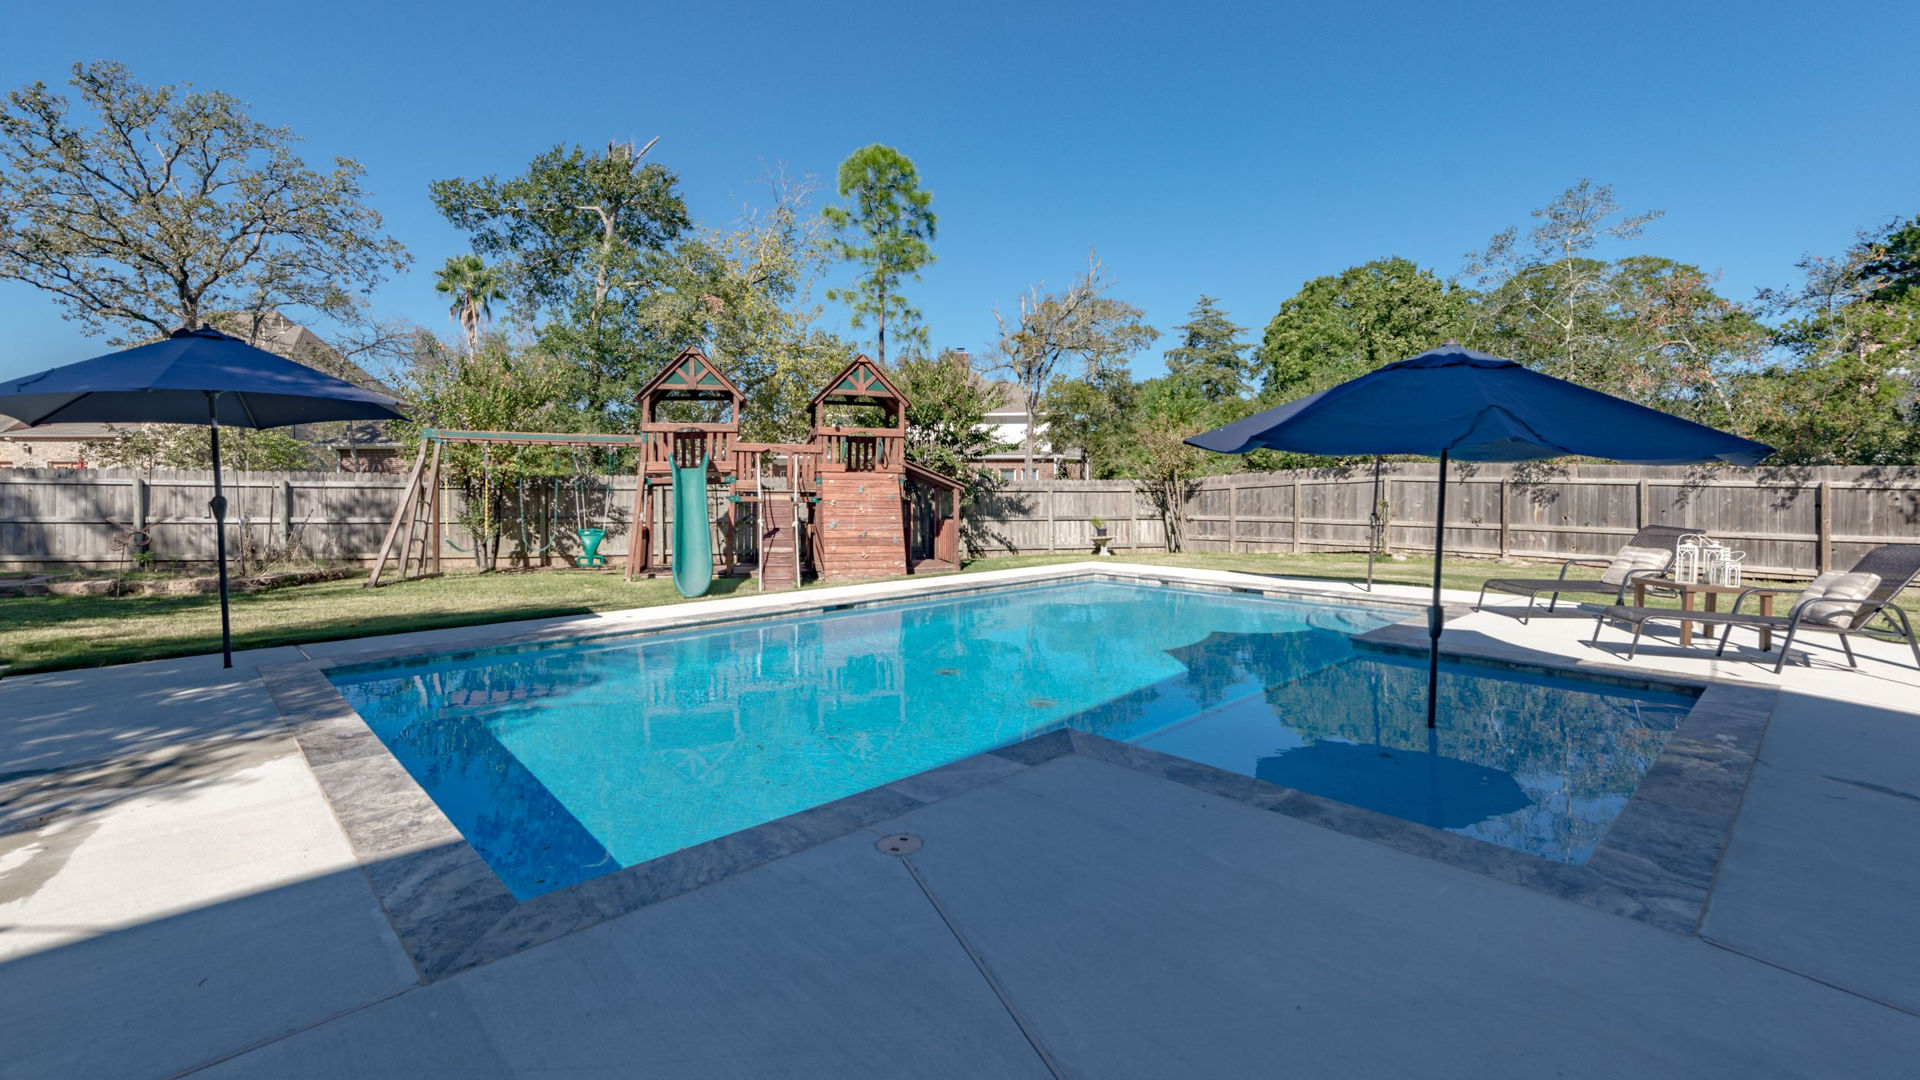 Contact us paradise oasis pools paradise oasis pools - Swimming pools in college station tx ...